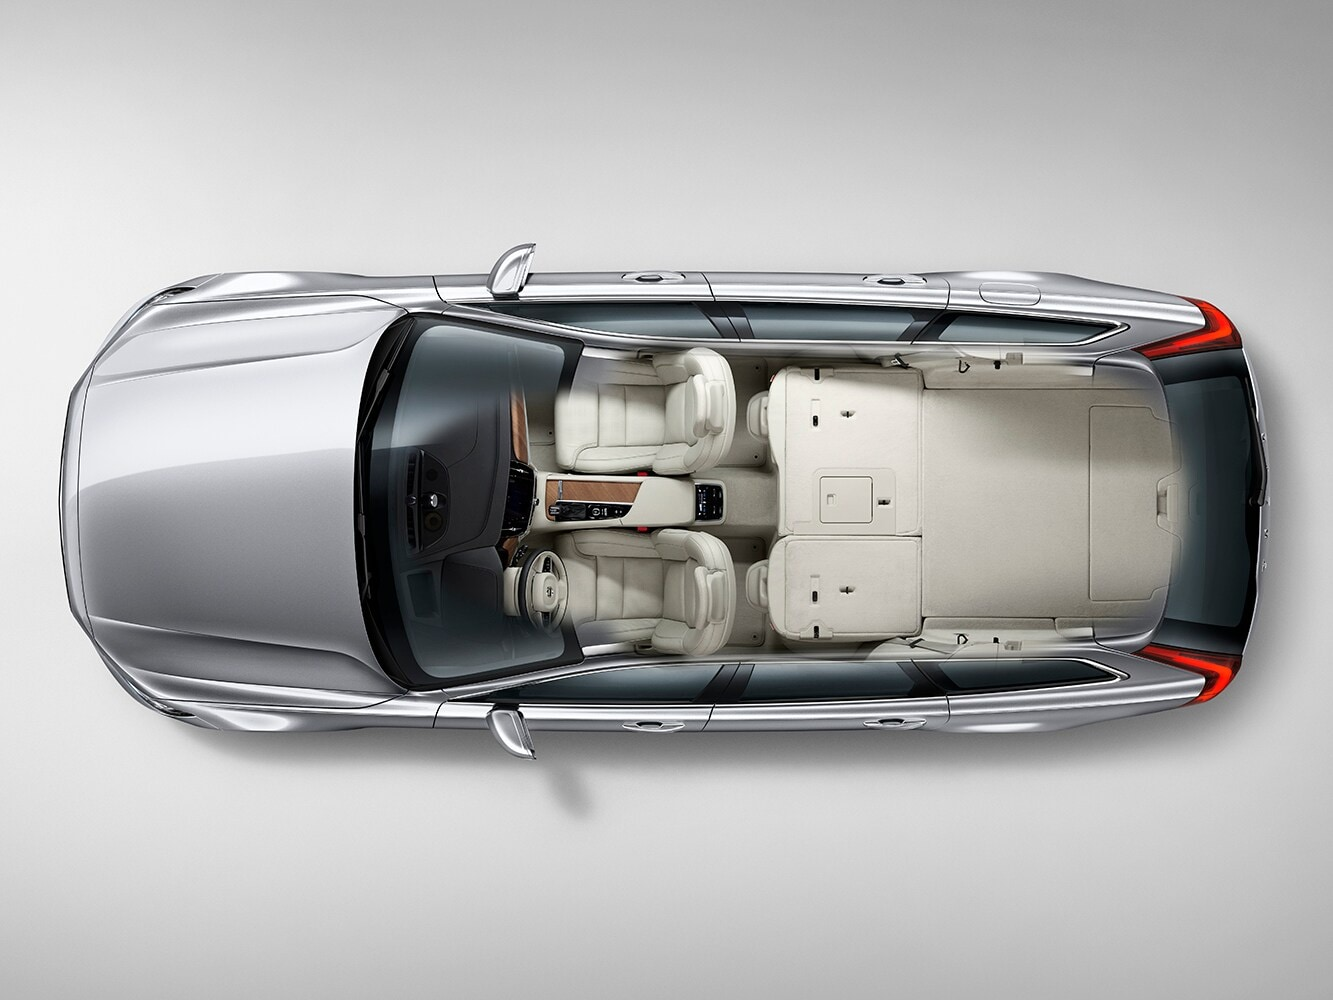 Top down cutaway view of the Volvo V90 showing the interior seat layout from above